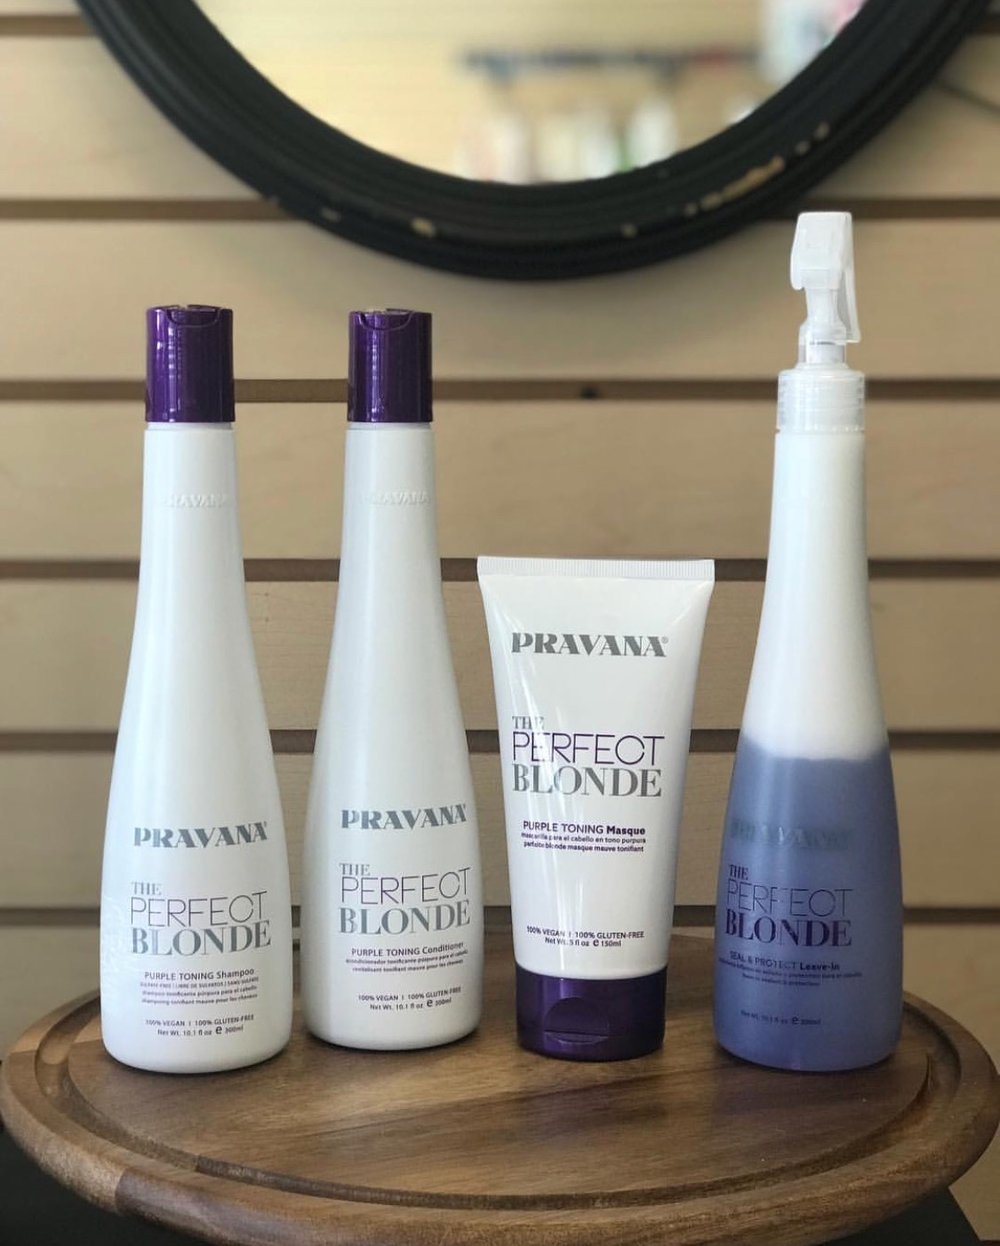 Pravana The Perfect Blonde Shampoo and Conditioner